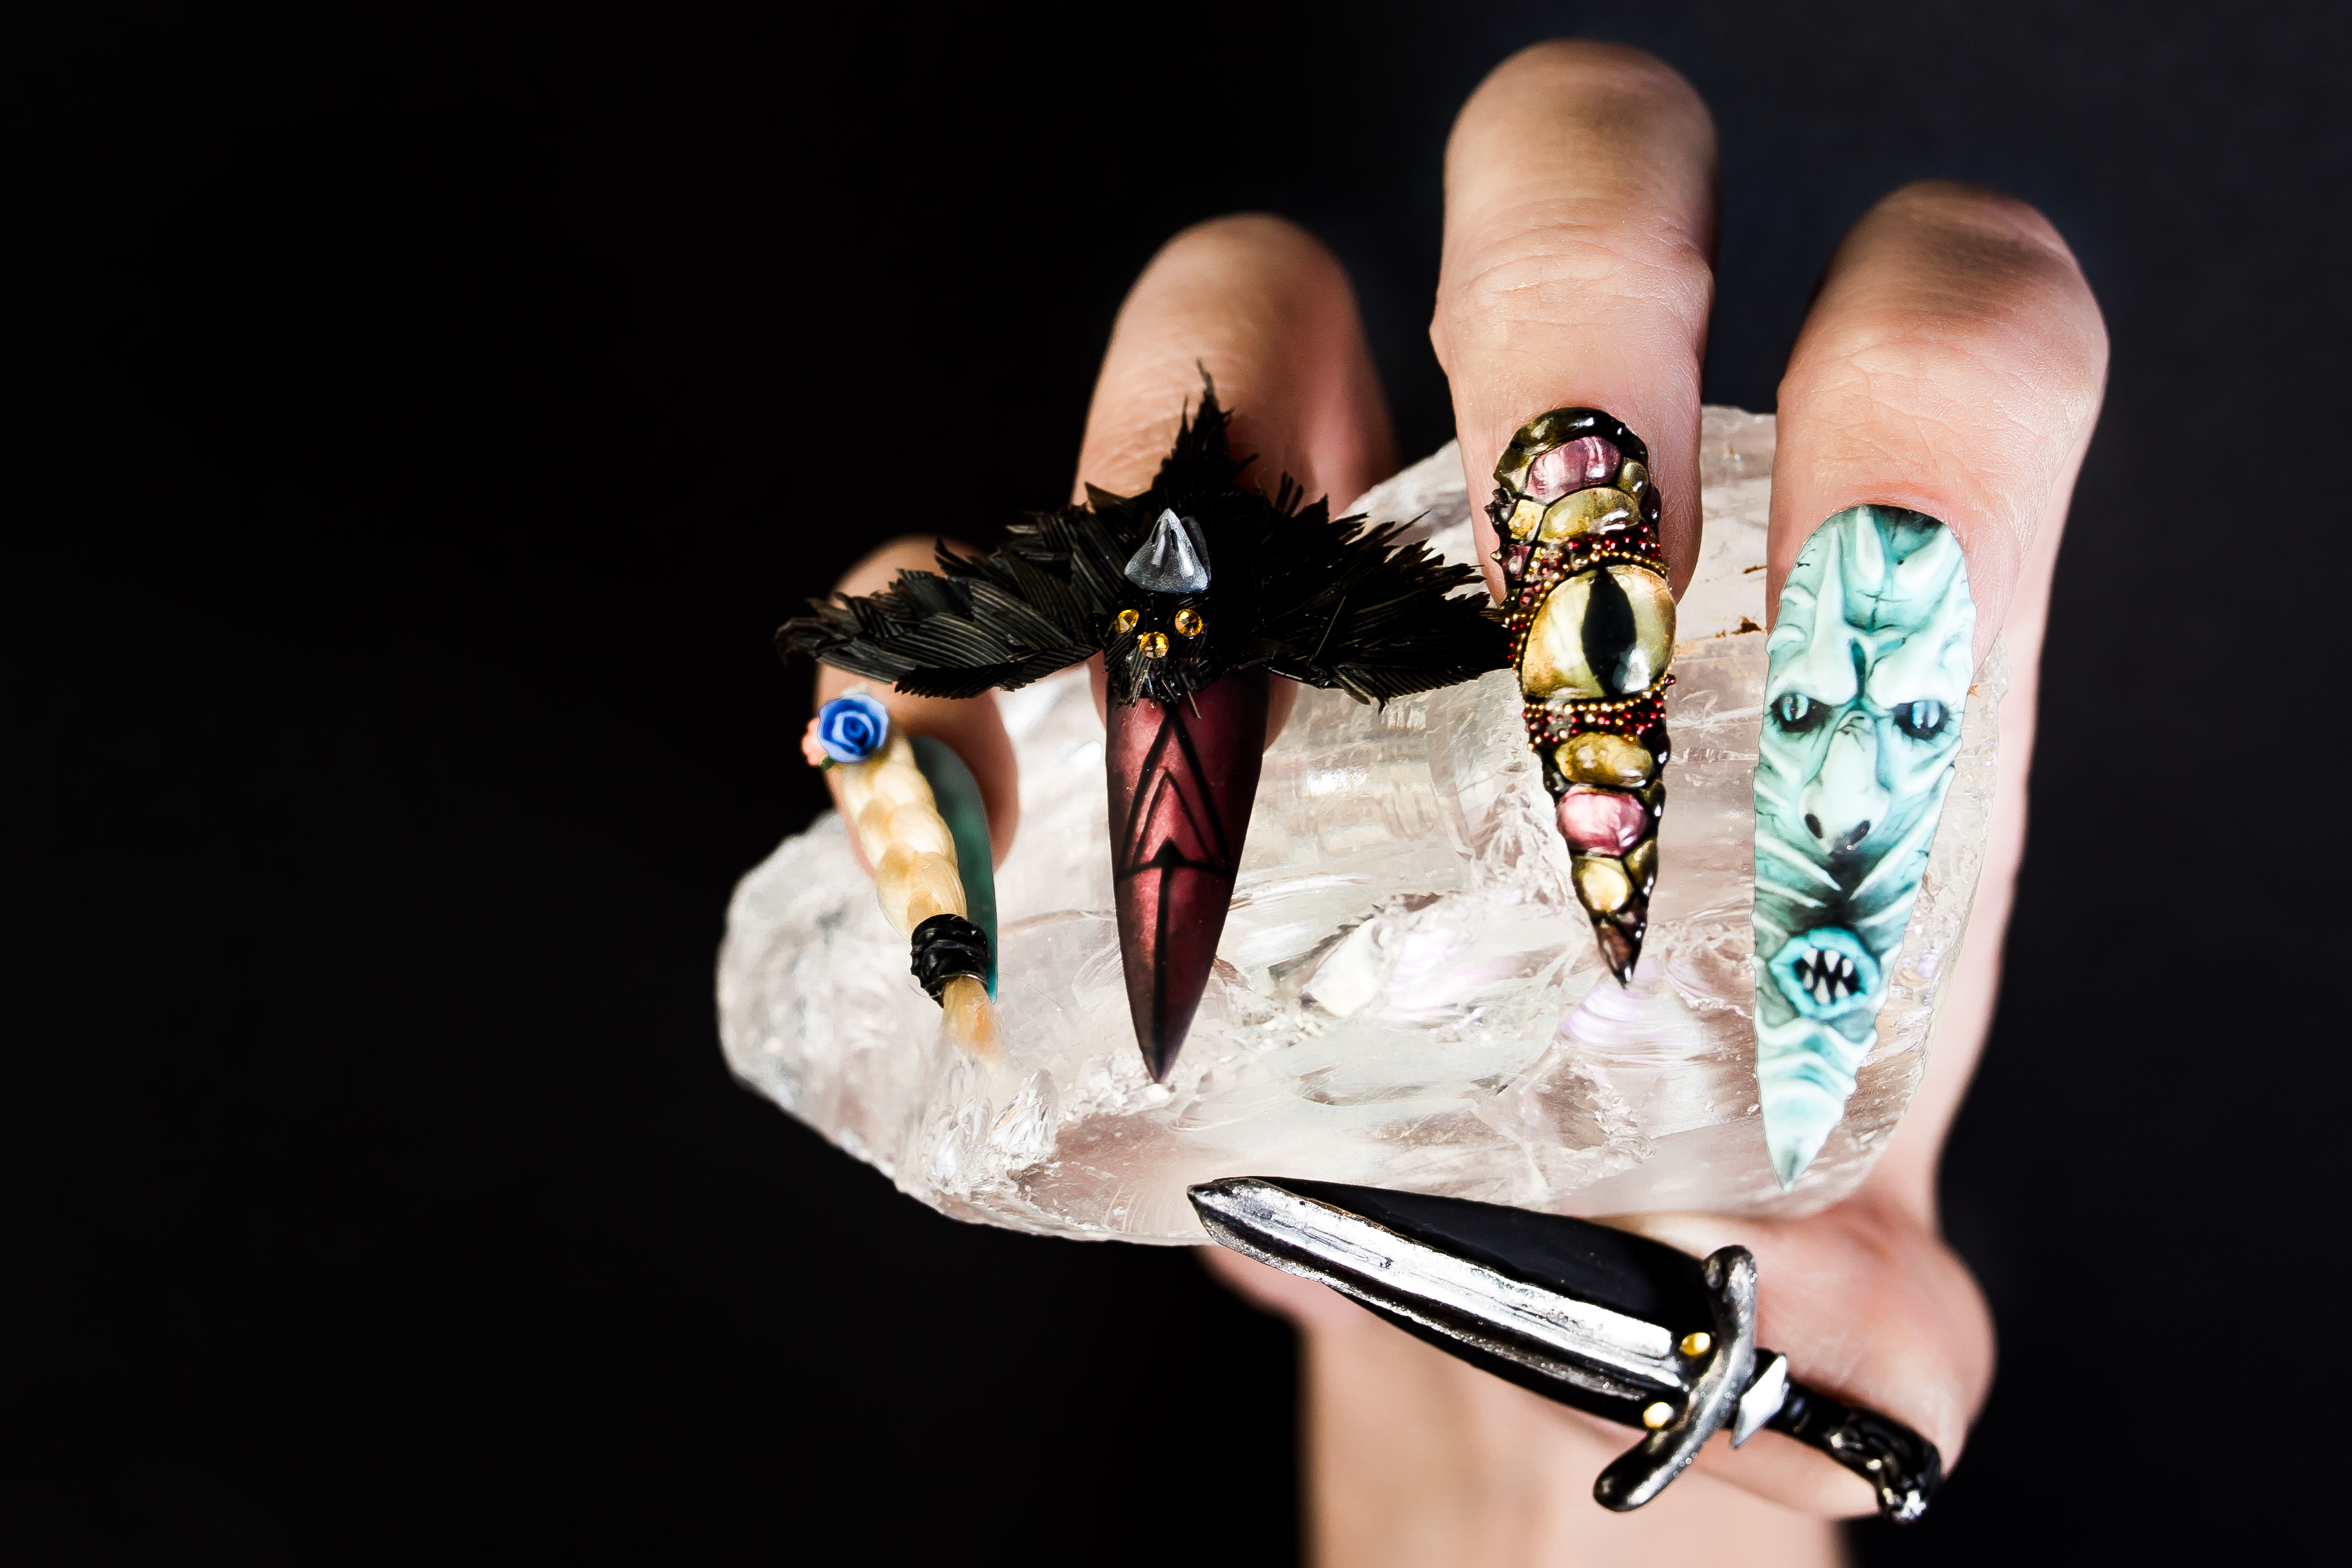 Day 125: Epic Game of Thrones Nail Art